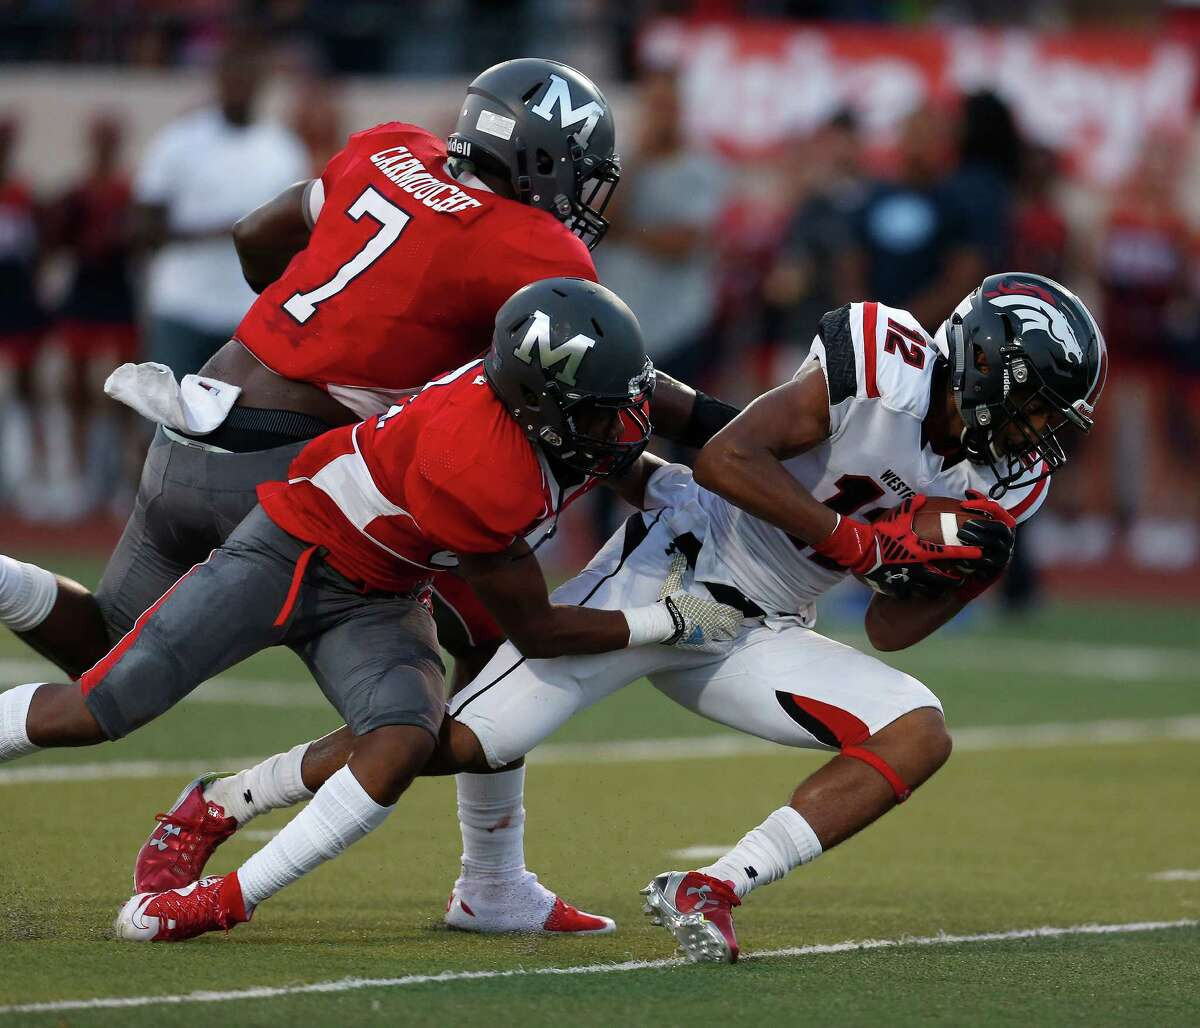 Wetfield's Lemuel Leblanc (12) scores a touchdown against Manvel's Brandon Bell (8) and Jordan Carmouche (7) during the first half of the Westfield vs Manvel High School football game on Friday, Aug. 28, 2015, in Alvin.